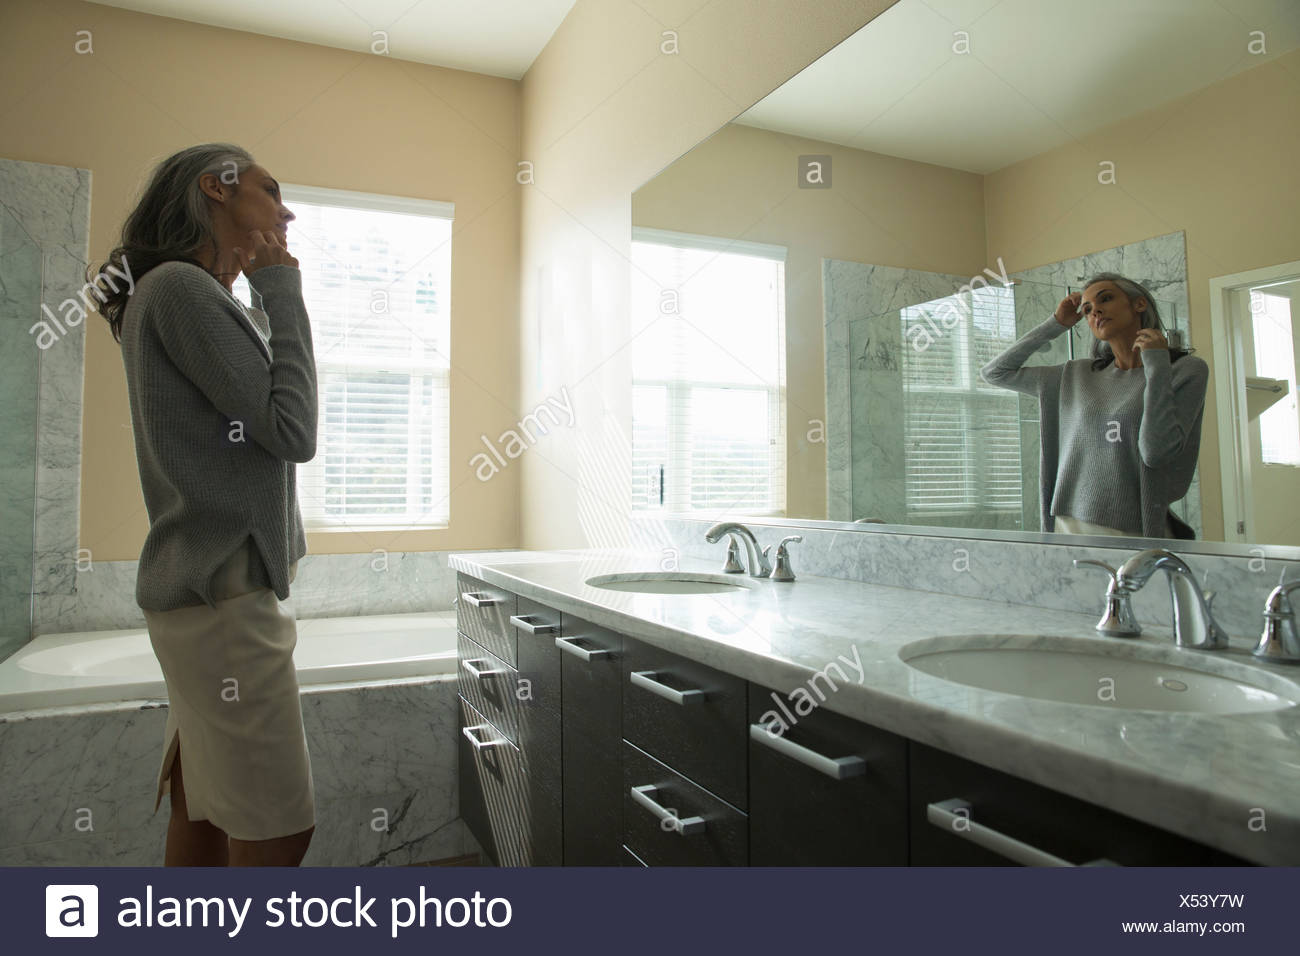 Woman pondering in front of mirror - Stock Image